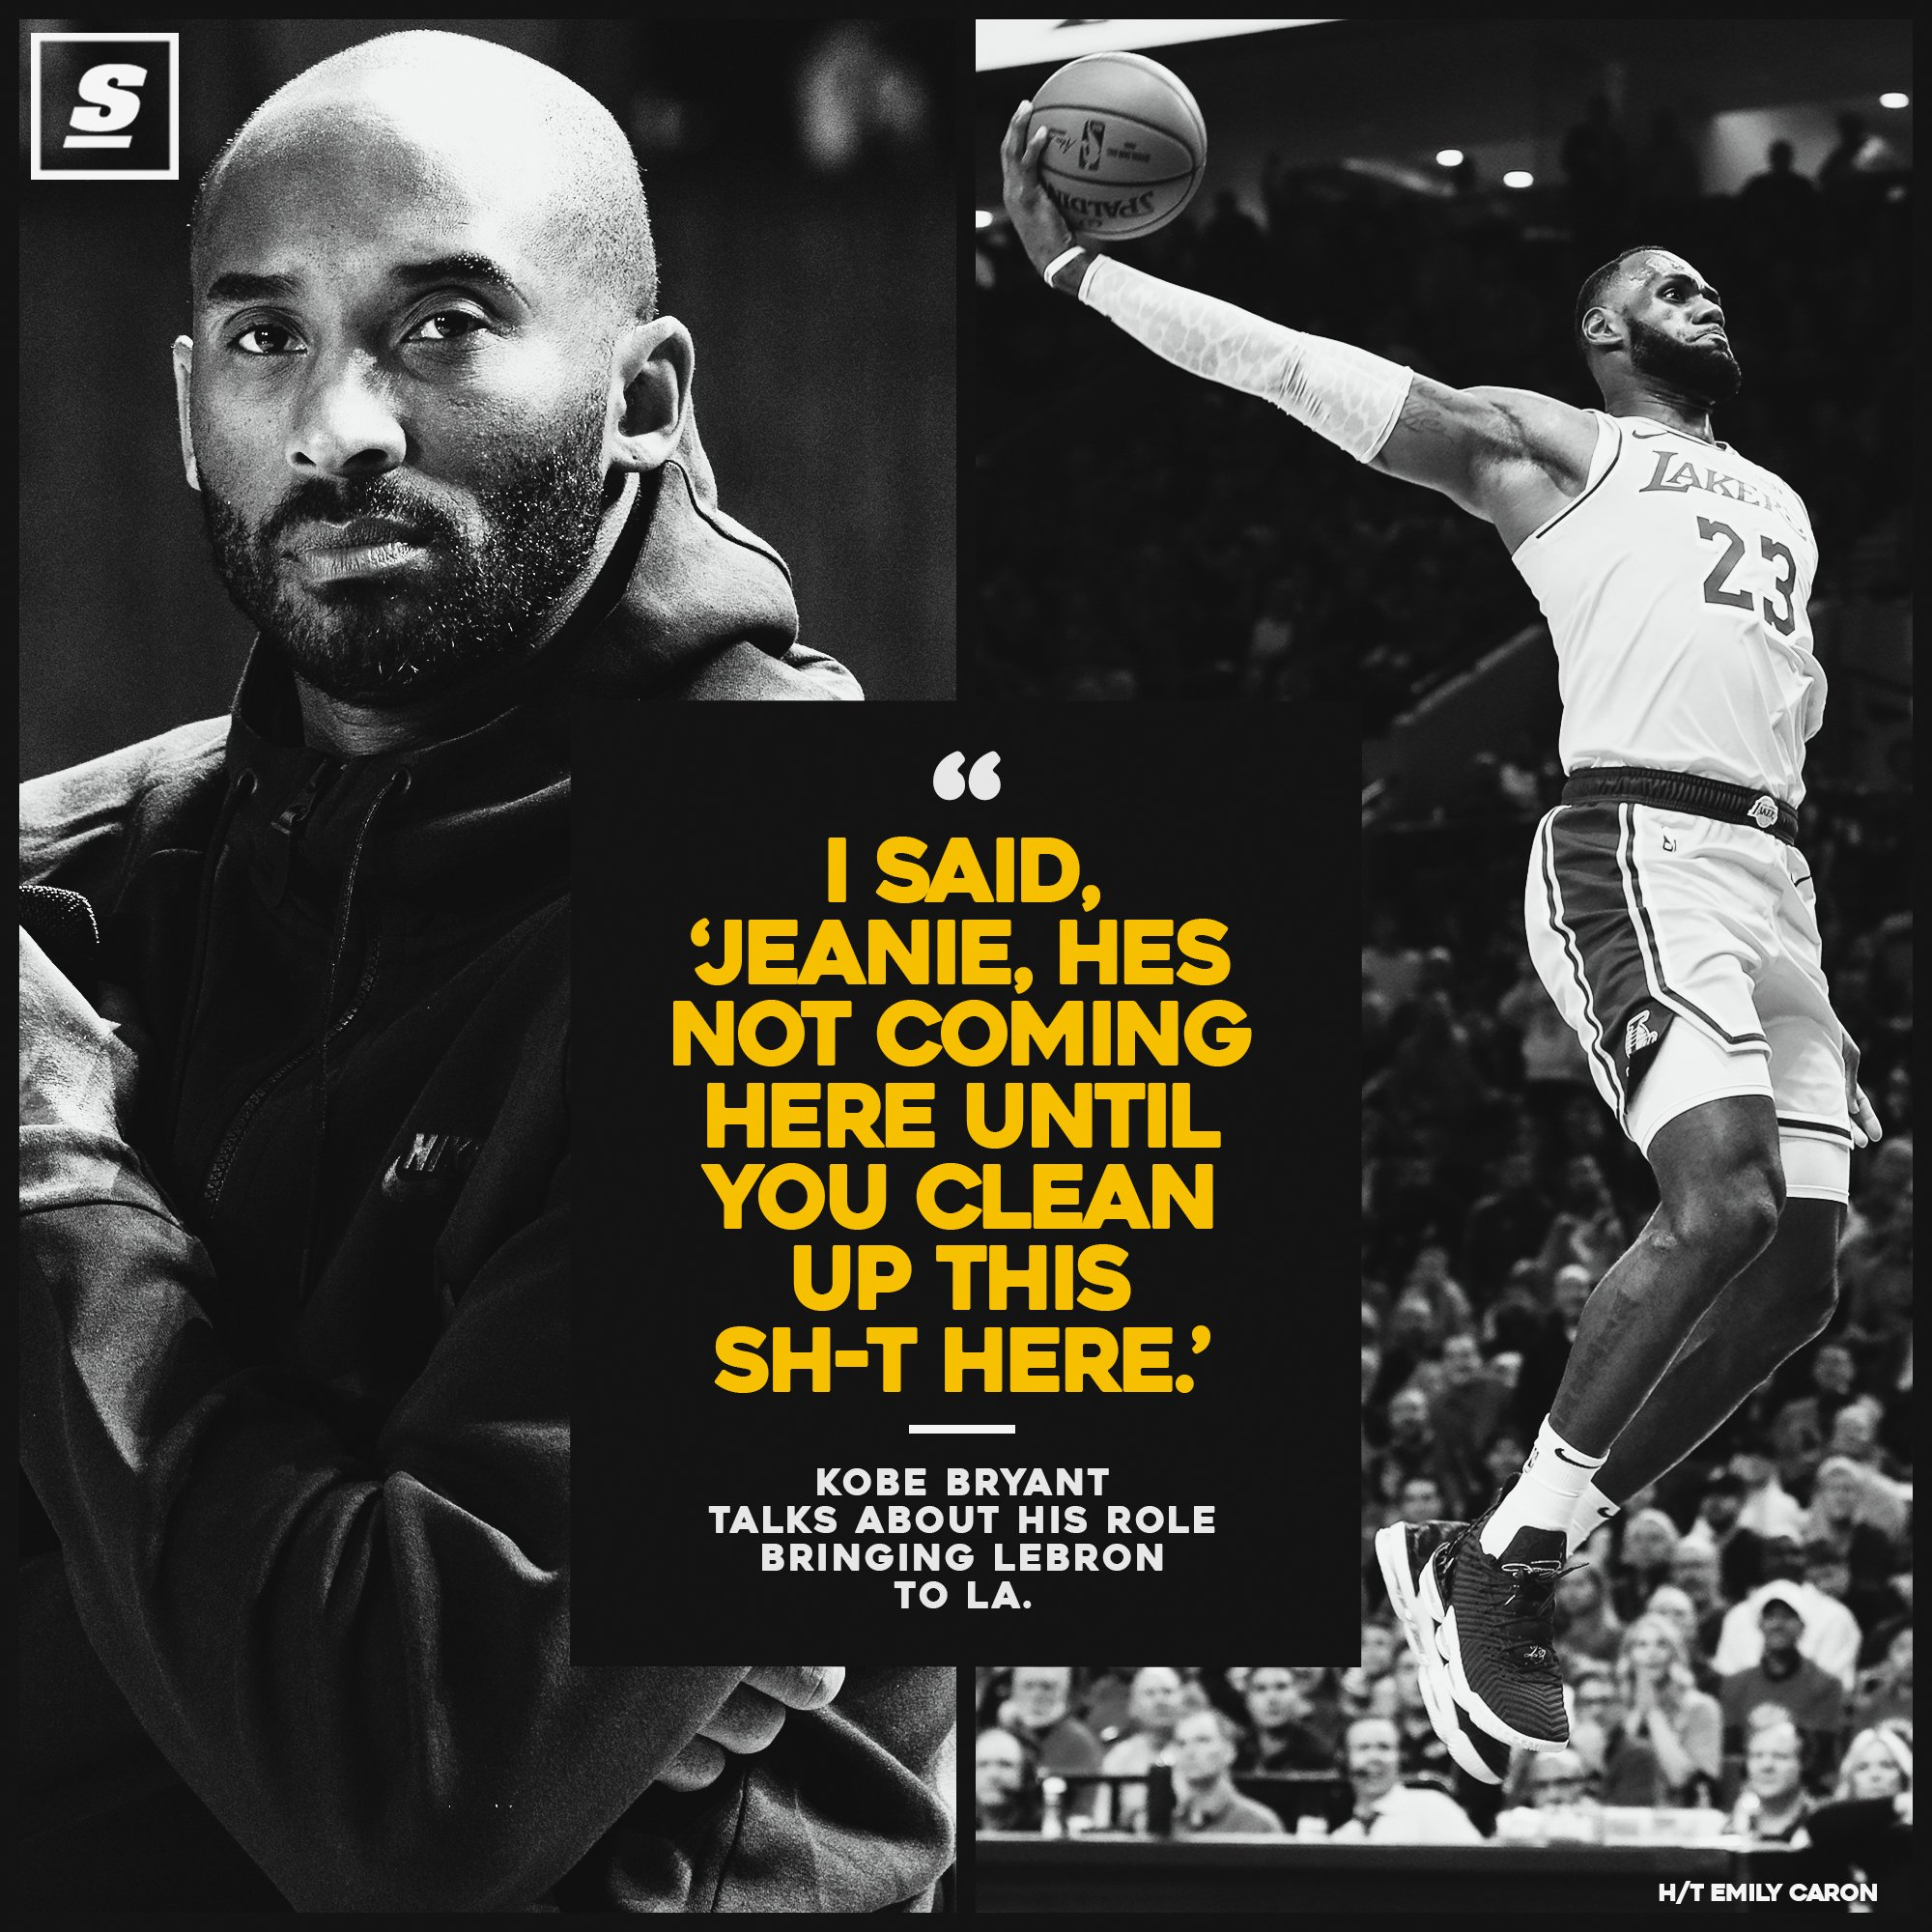 Kobe had some advice for the Lakers on how to land LeBron. https://t.co/1U3sQeQxfS